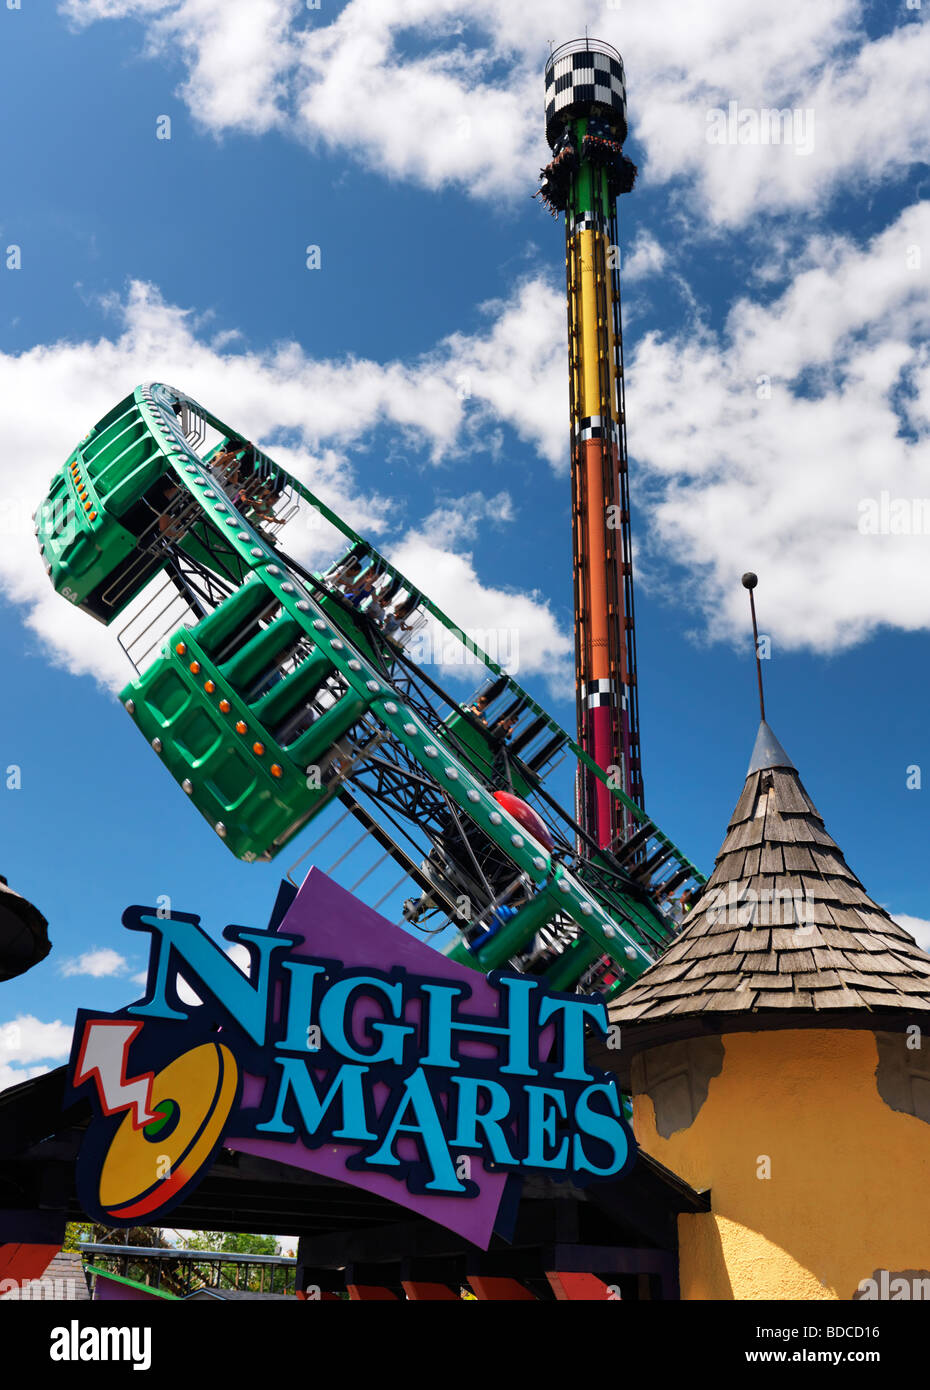 Night Mares and Drop Tower thrill rides at Canada's Wonderland amusement park - Stock Image